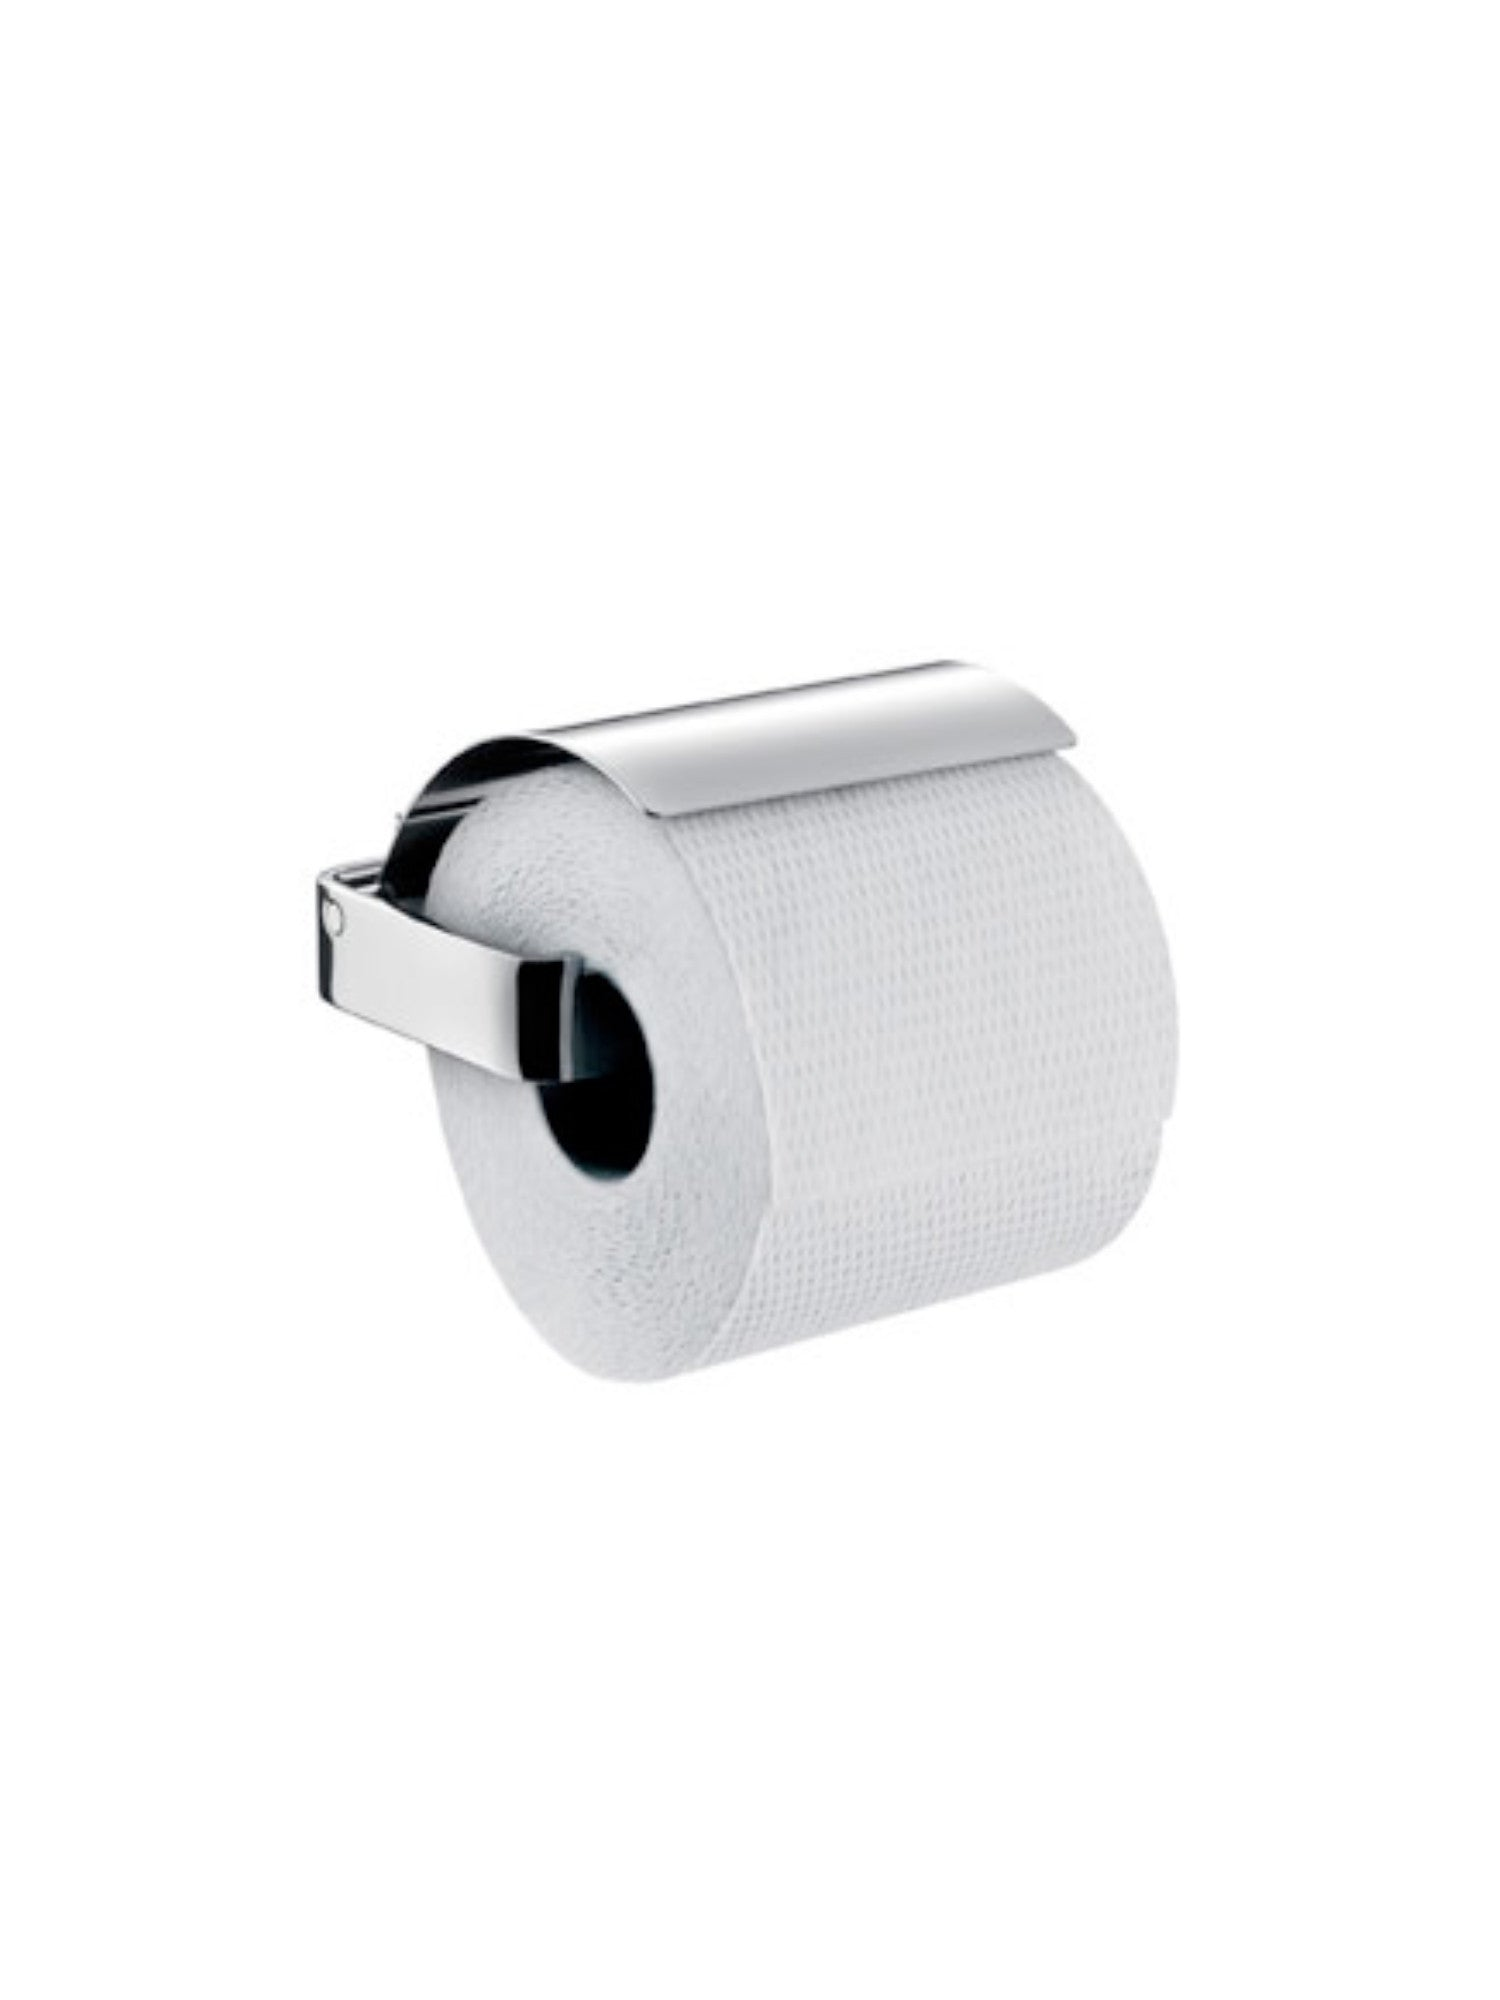 Loft Paper Holder w/ cover #0500 001 00 – hemsleybathshoppe